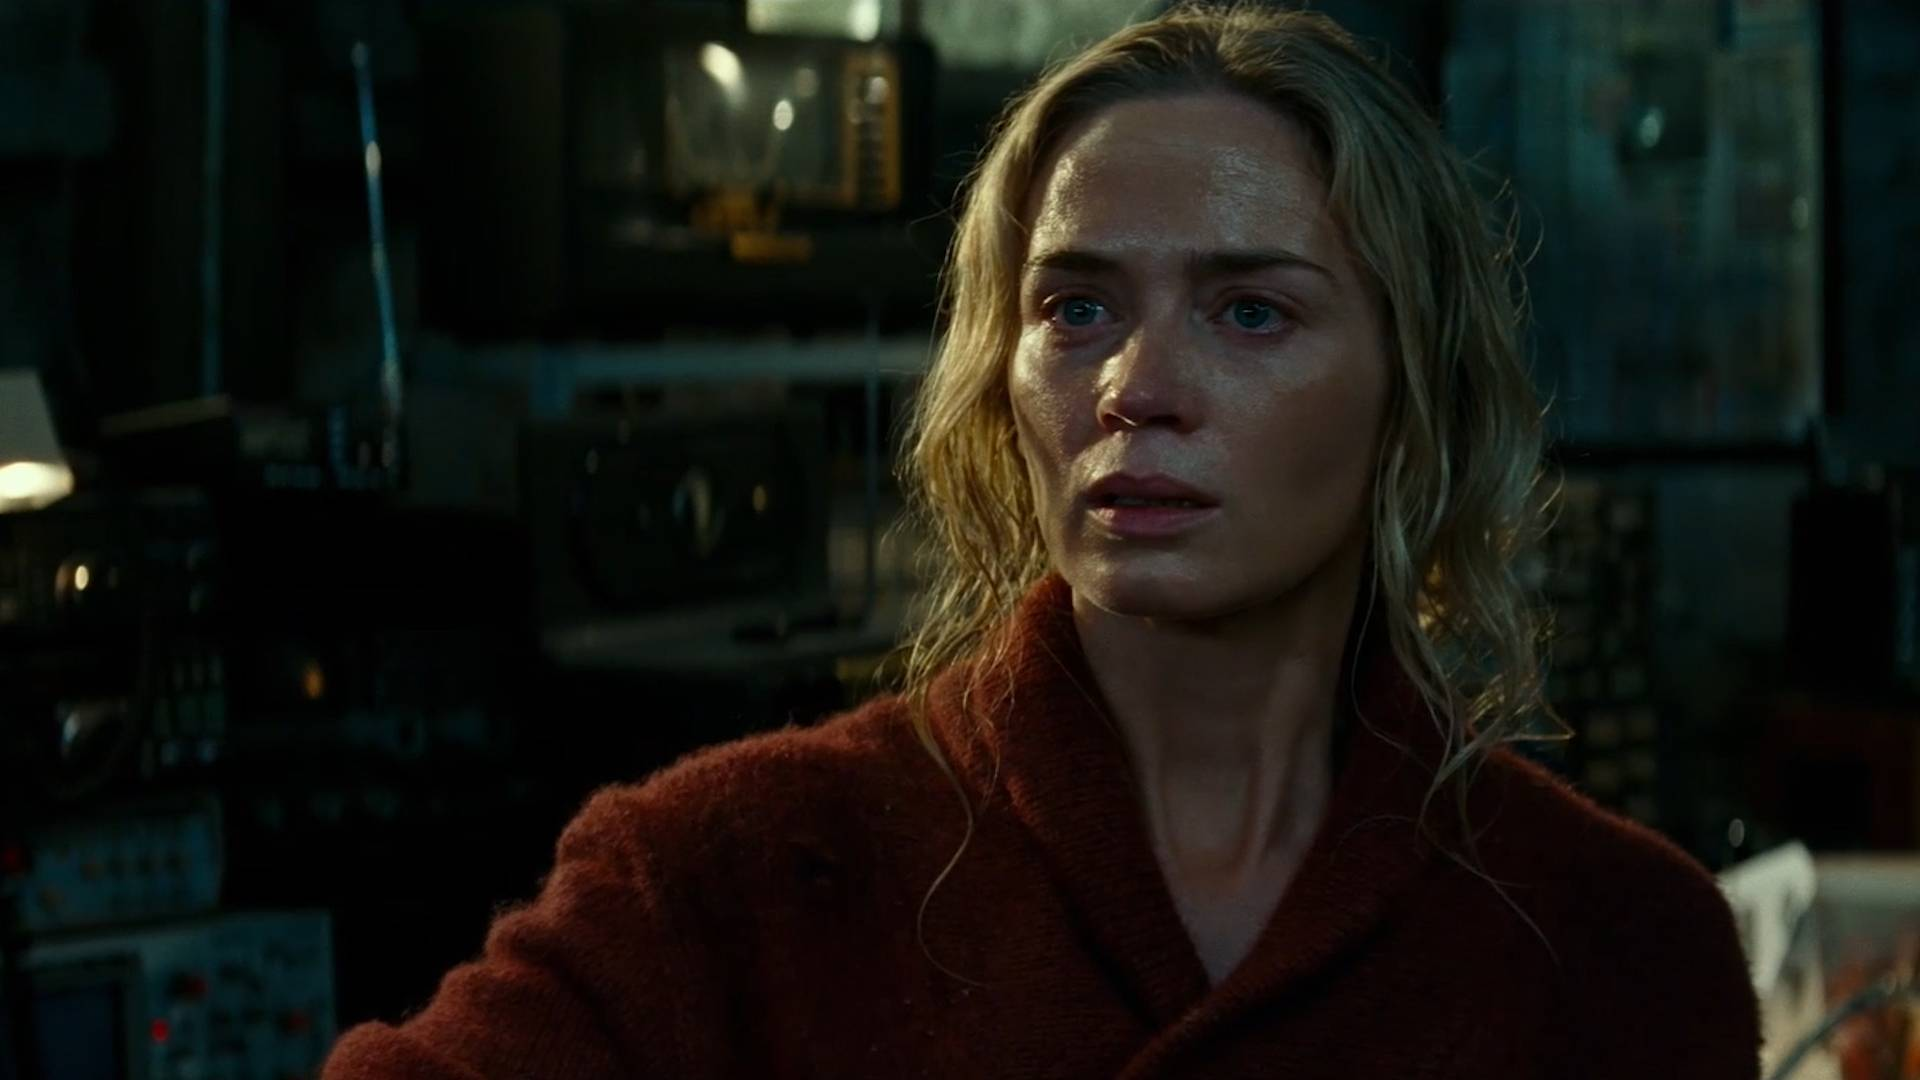 EMILY BLUNT | Evelyn | A QUIET PLACE